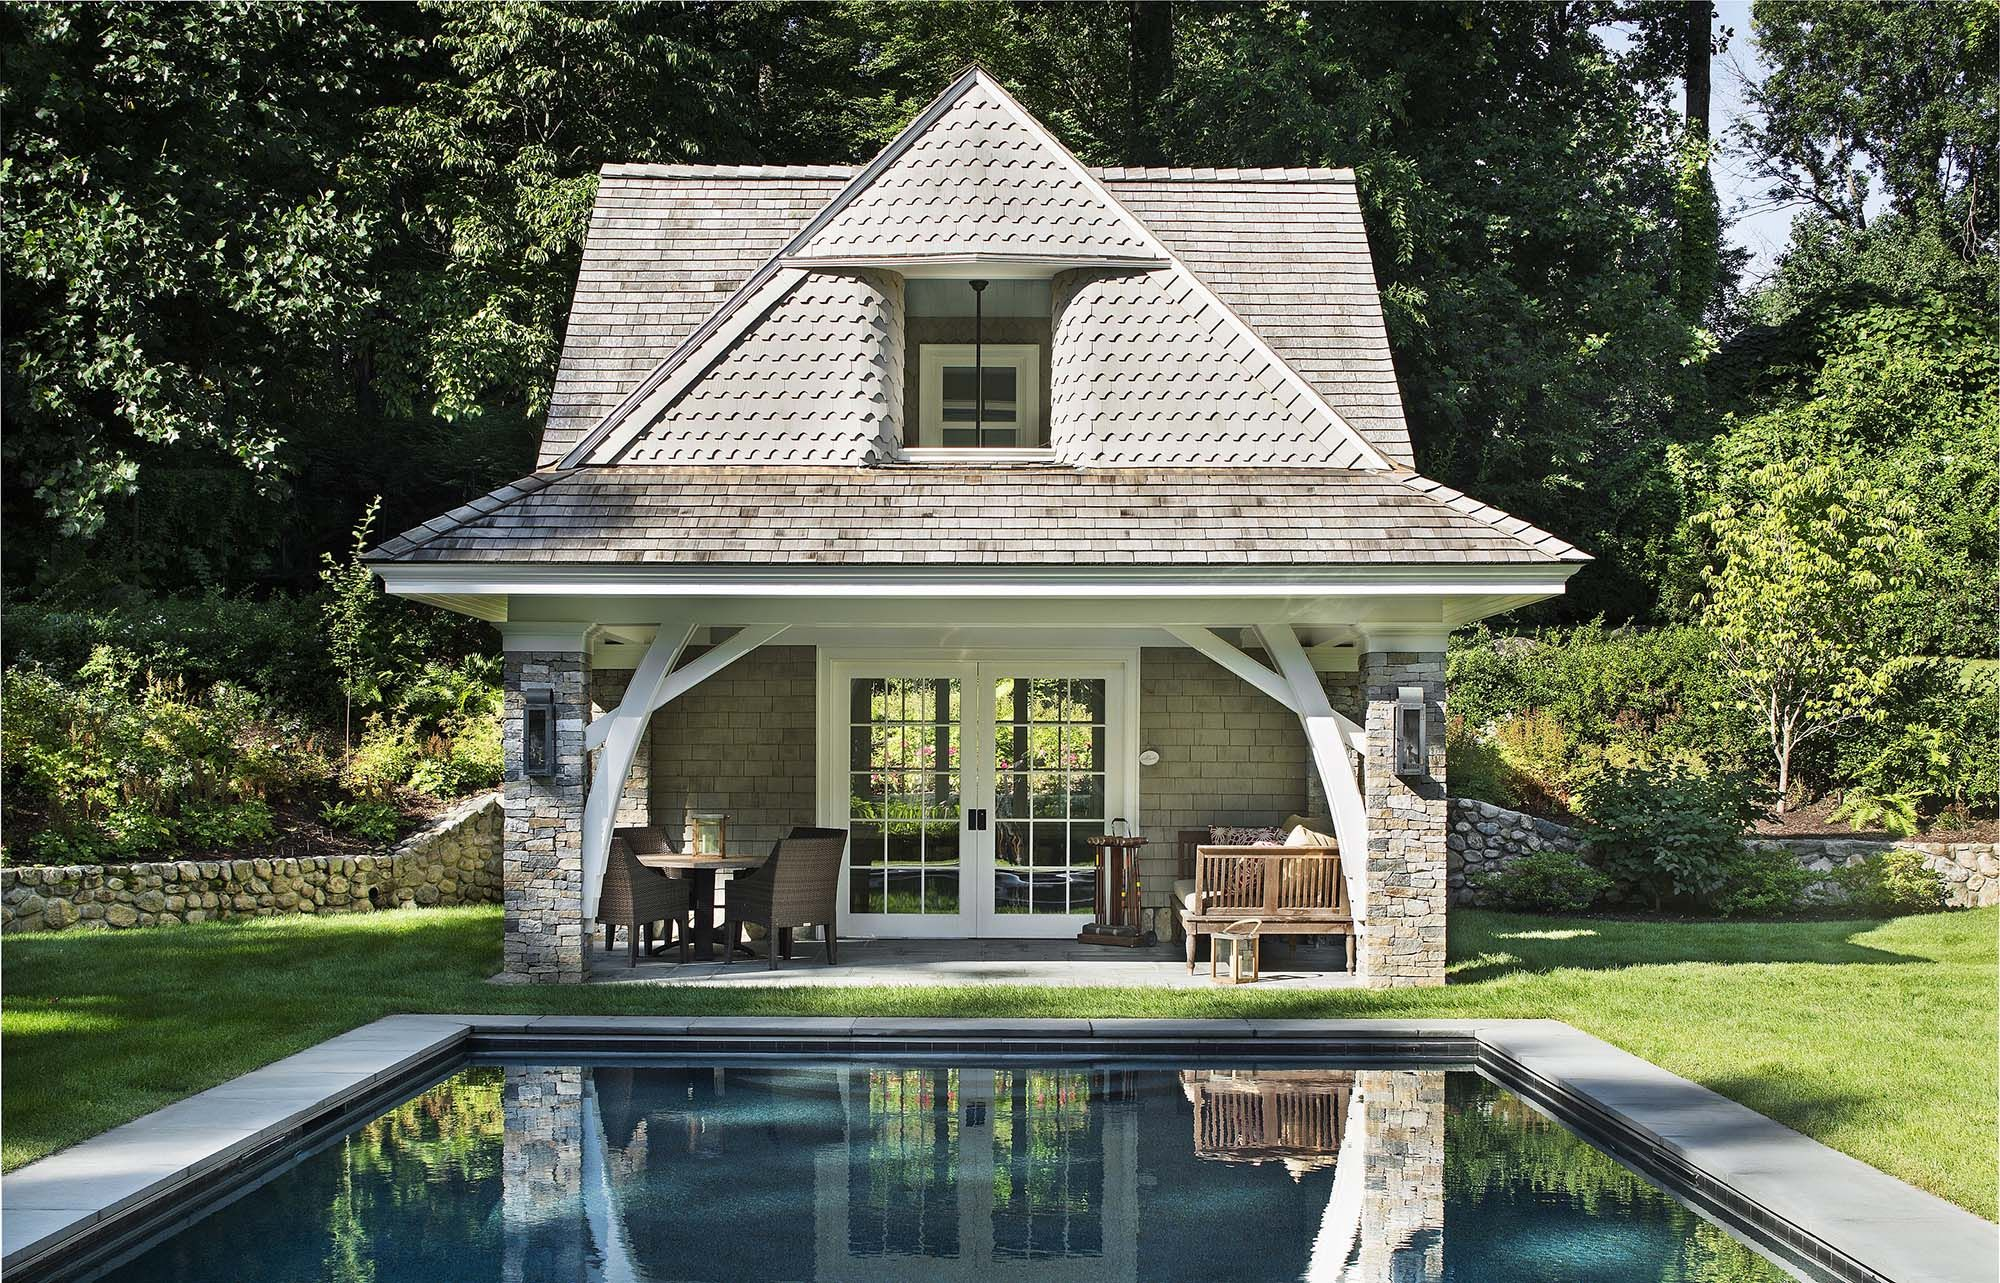 Beautiful Pool House Design With Living Space Stone Veneer With Cedar Shake Pool House Designs Pool Houses Shingle Style Homes